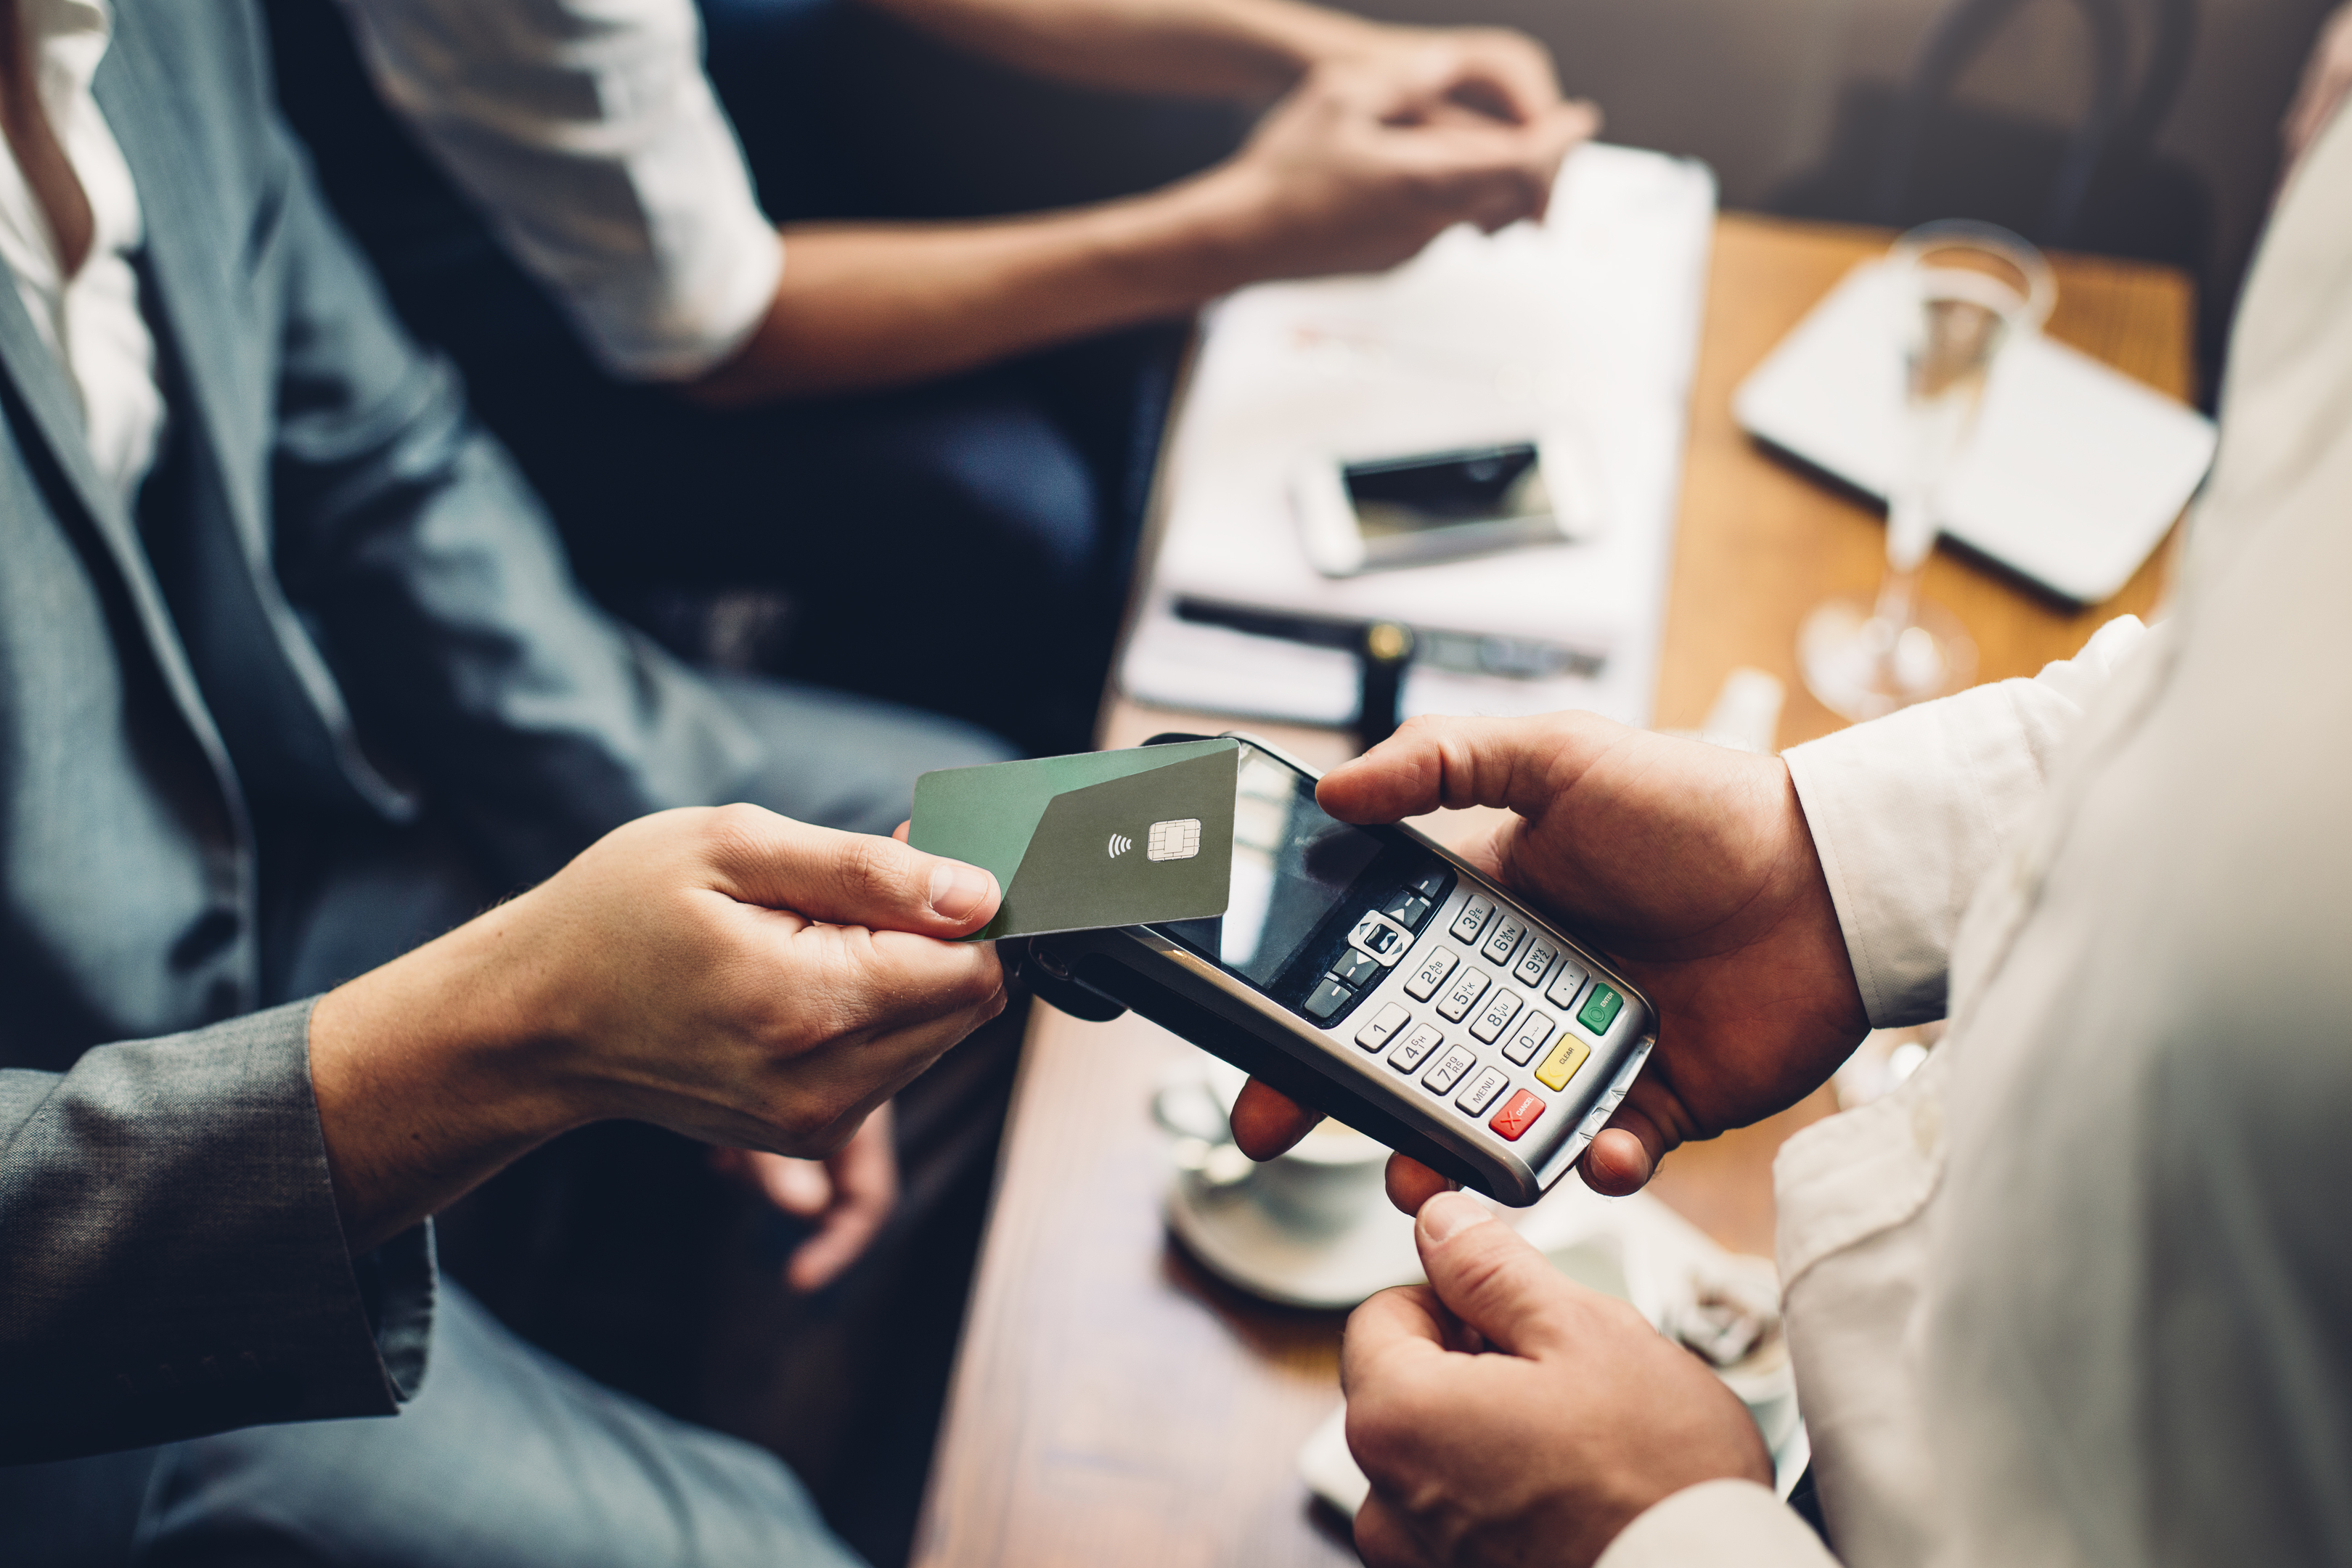 34% of people believe the country will be cashless within the next 20 years (iStock)